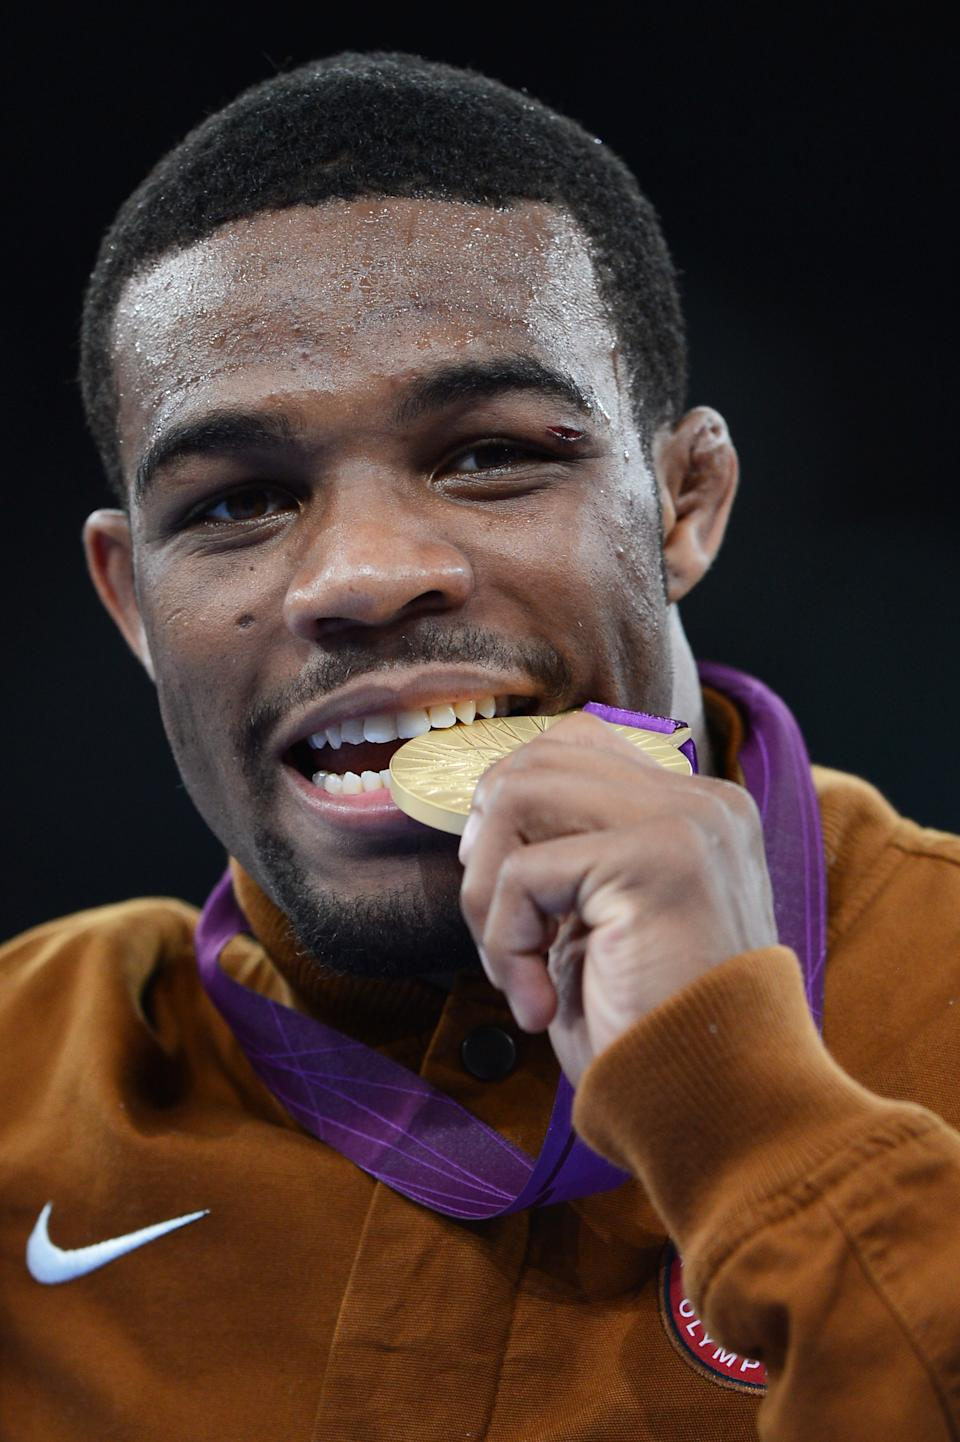 Jordan Ernest Burroughs of the United States celebrates his gold medal in the Men's Freestyle 74 kg Wrestling on Day 14 of the London 2012 Olympic Games at ExCeL on August 10, 2012 in London, England. (Photo by Michael Regan/Getty Images)